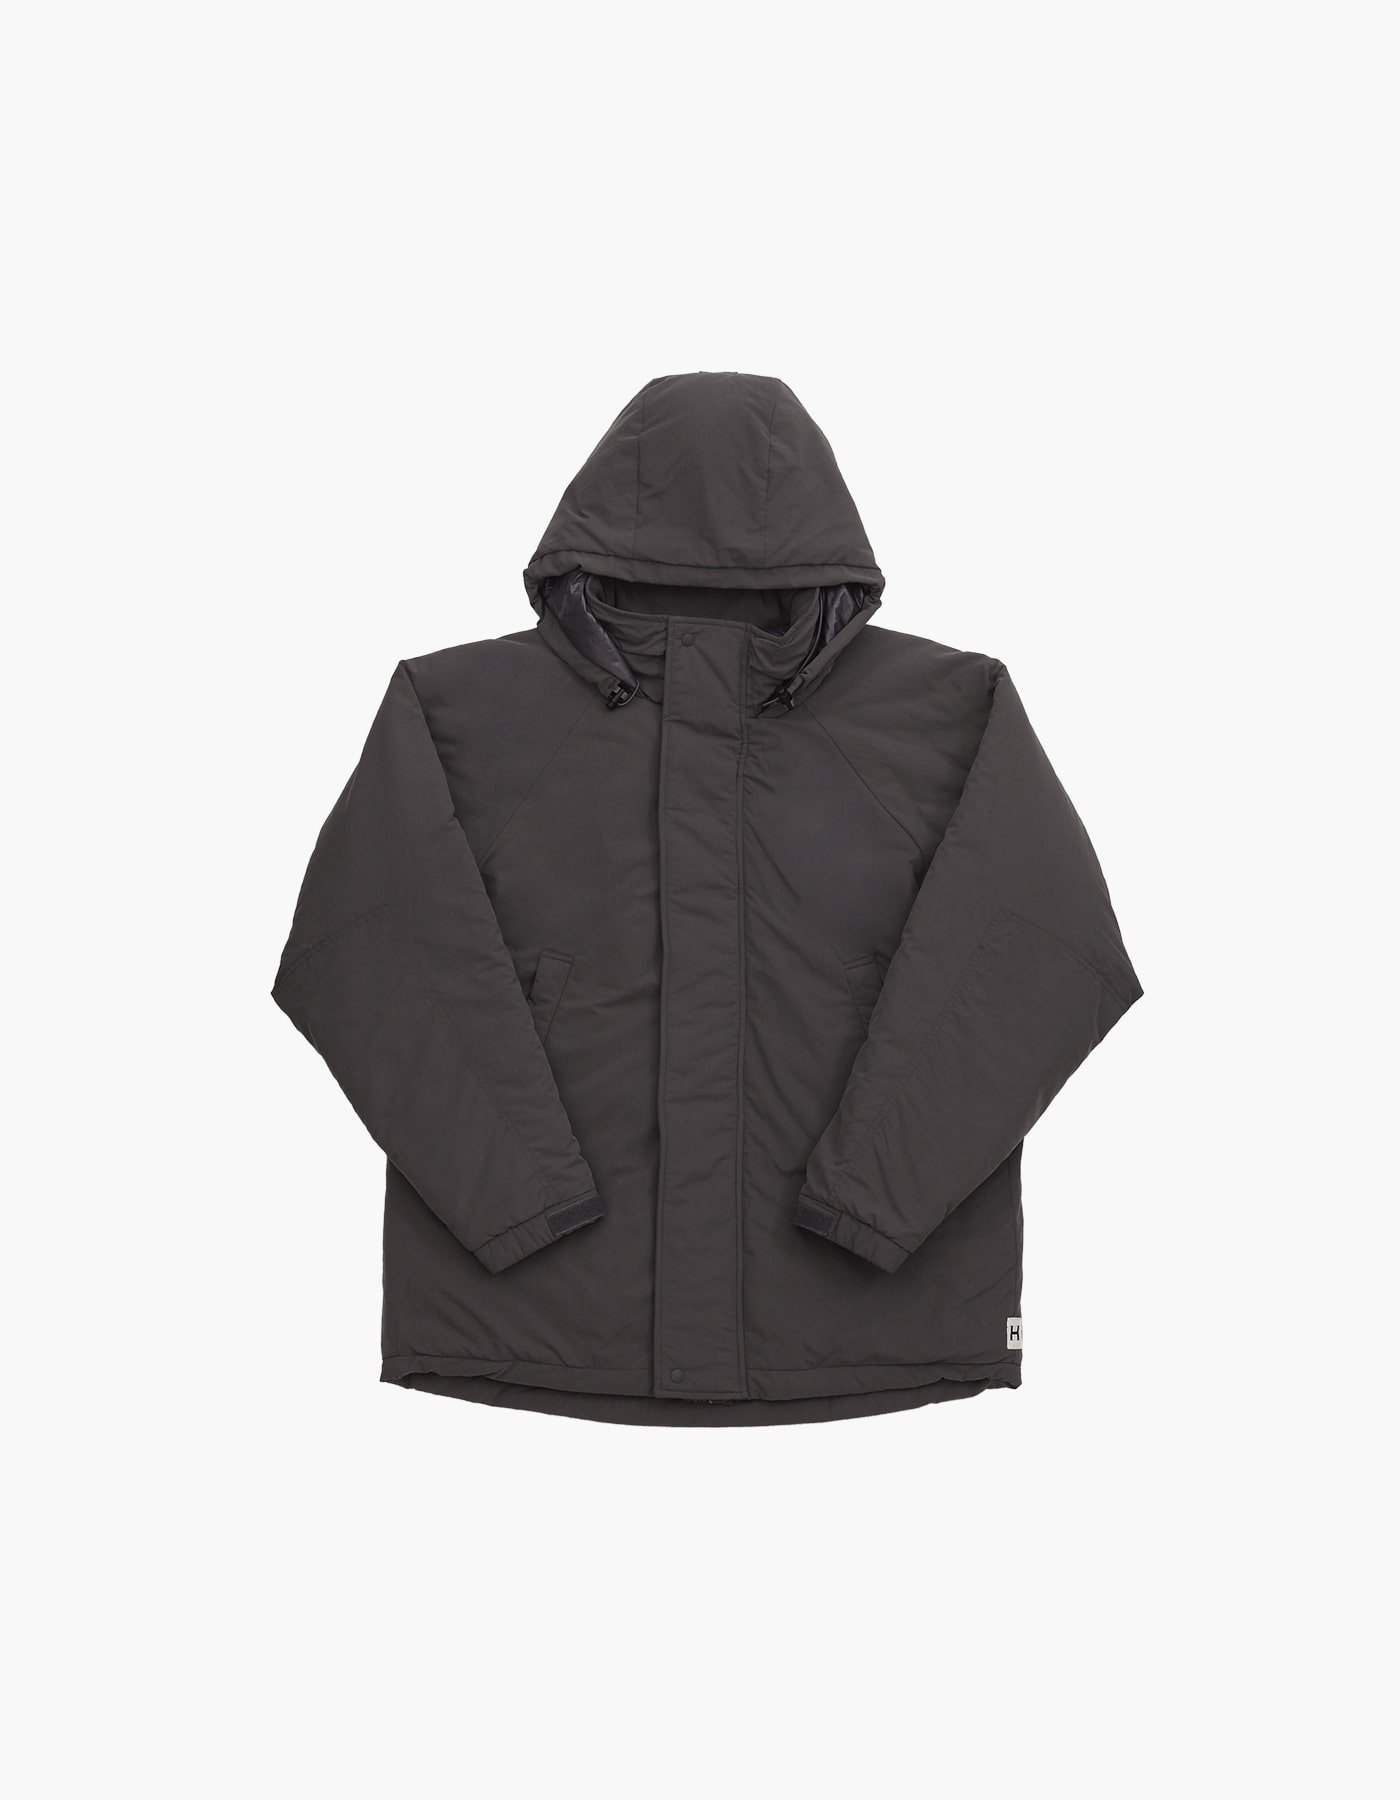 COLD PARKA / CHARCOAL